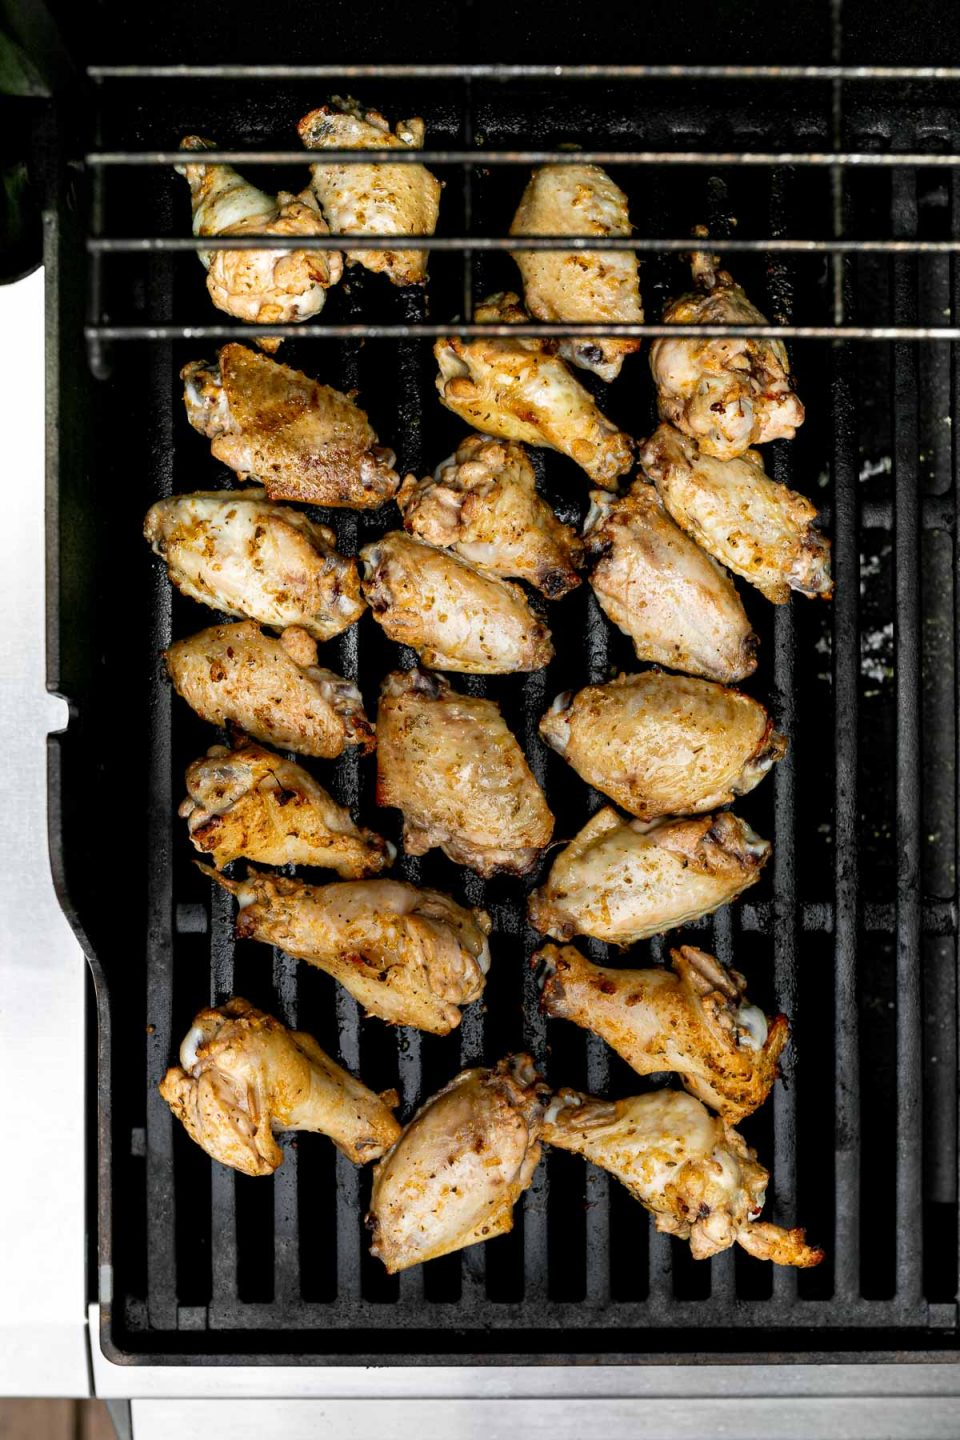 Grilled Lemony Greek Chicken Wings sit on top of Weber Grill grates.